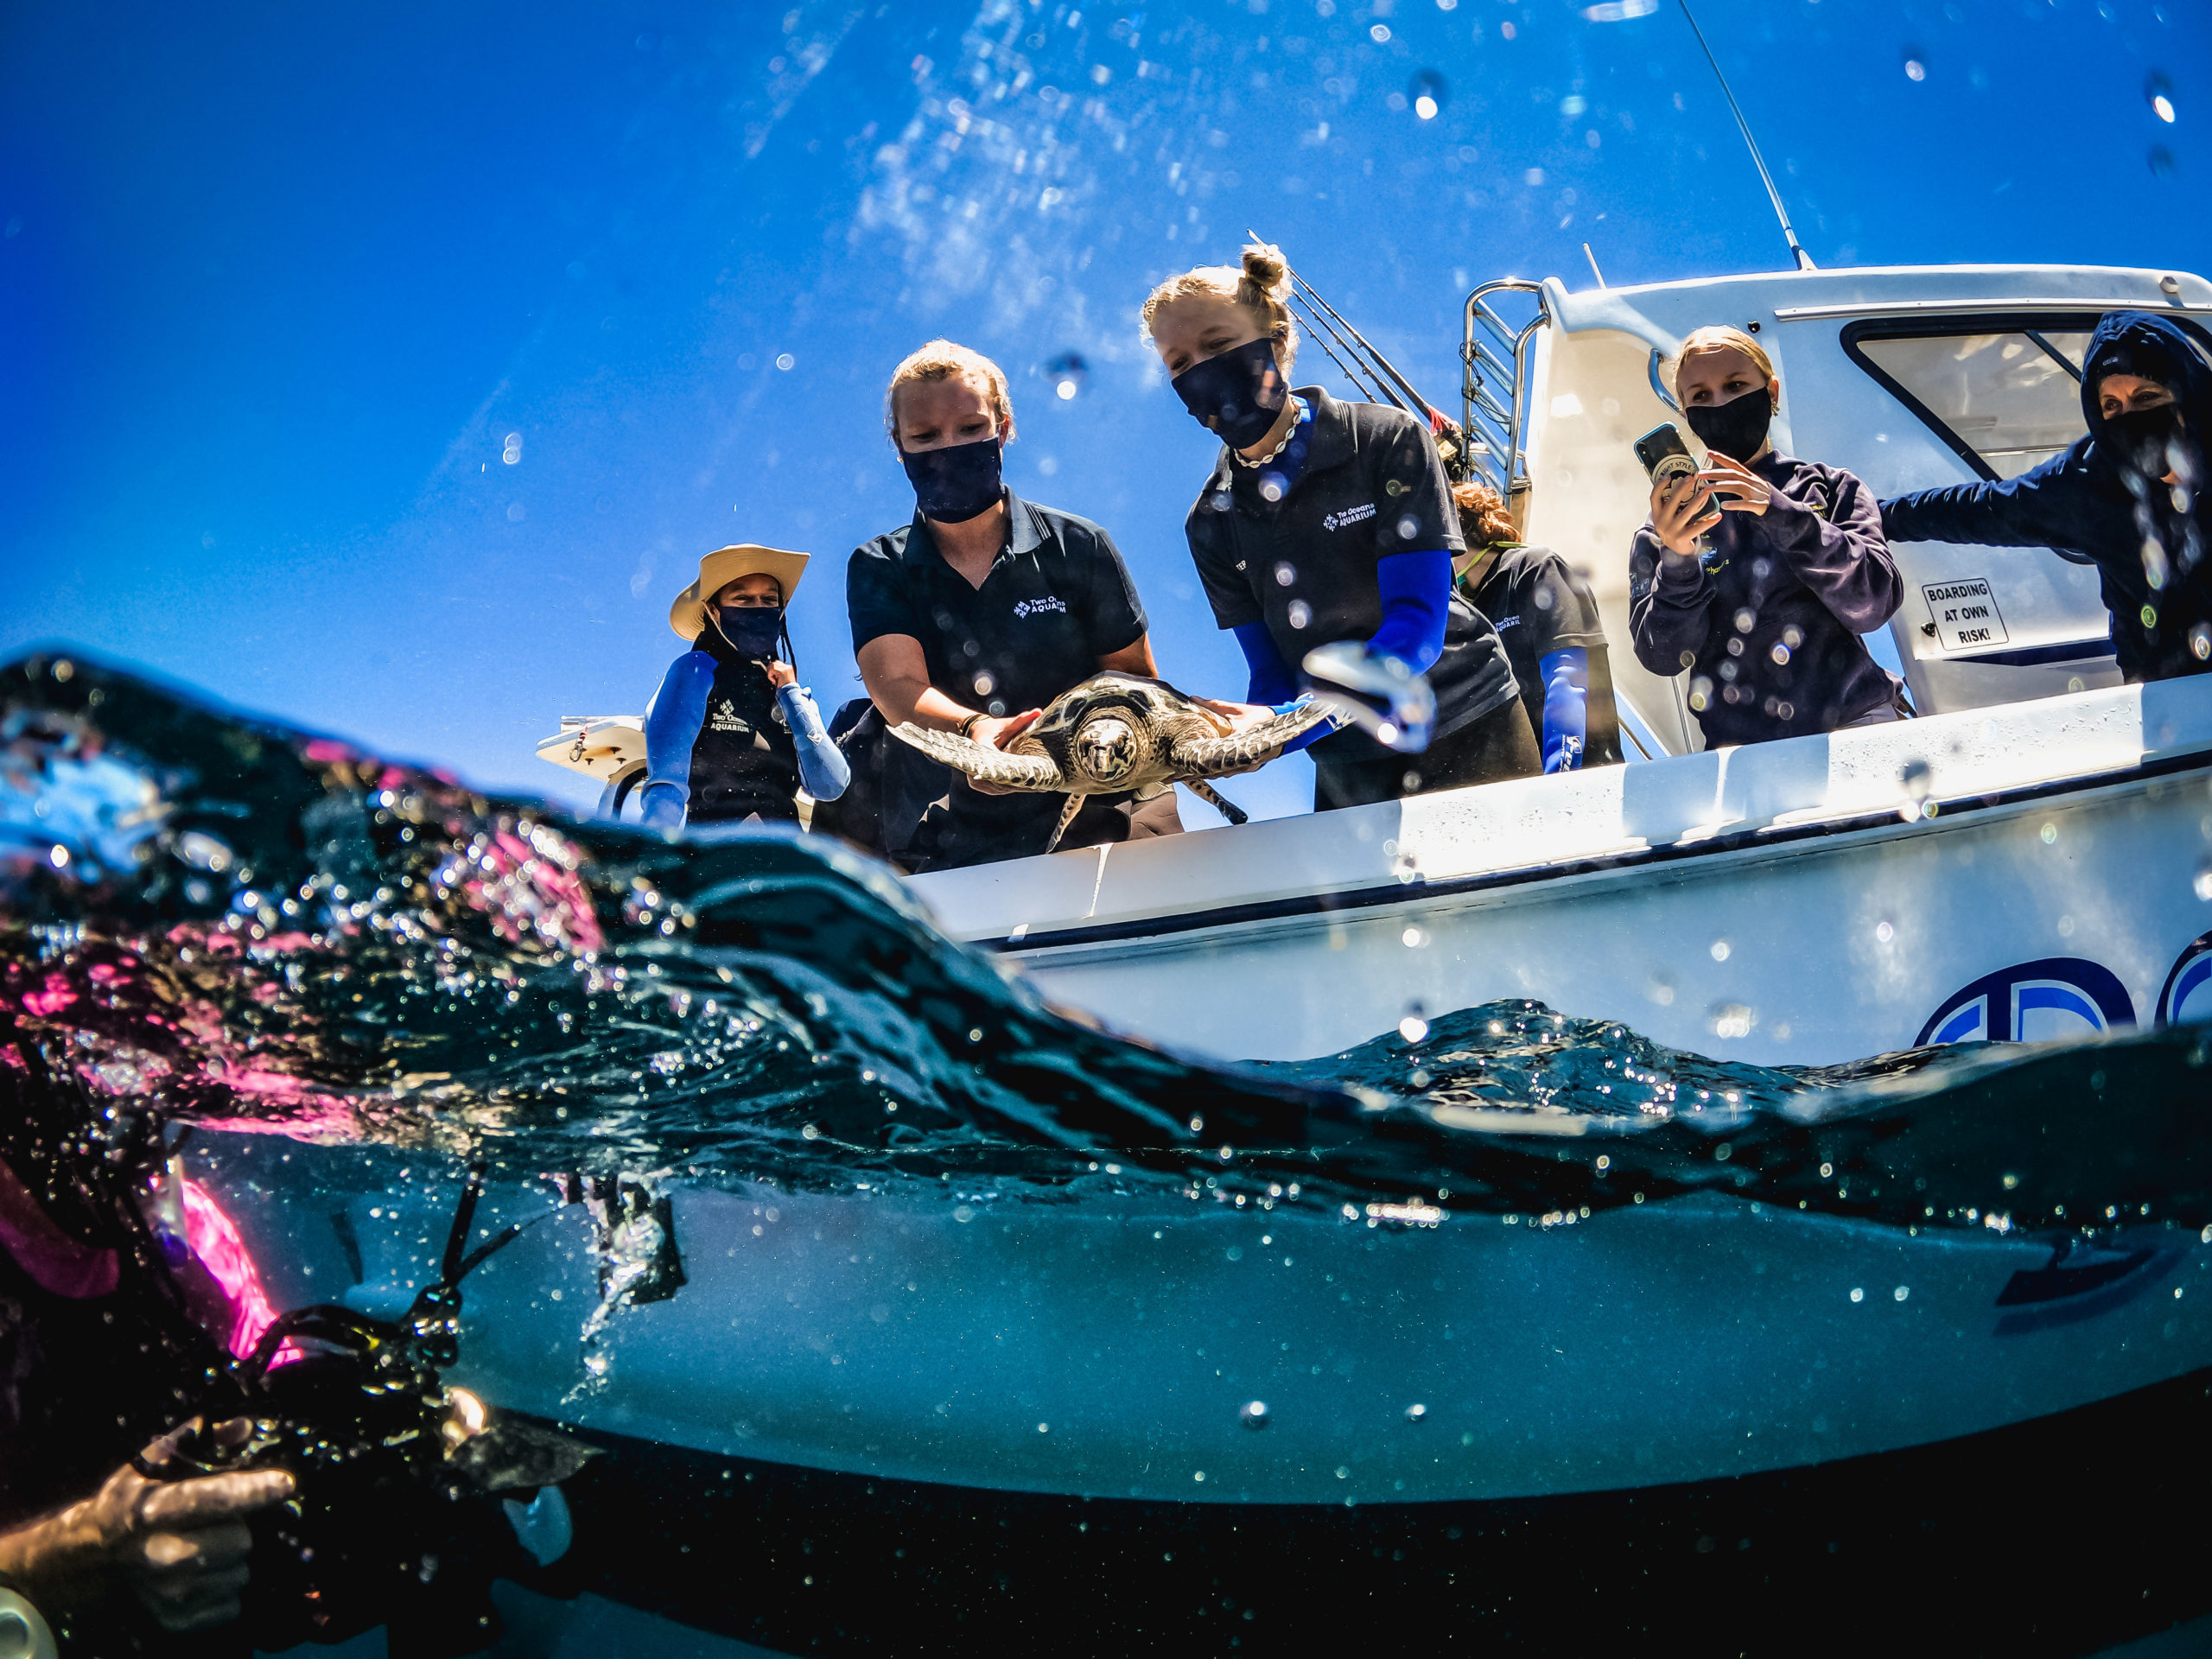 Cape2Rio Race 2023 Signs A Partnership Agreement With The Two Oceans Aquarium Education Foundation